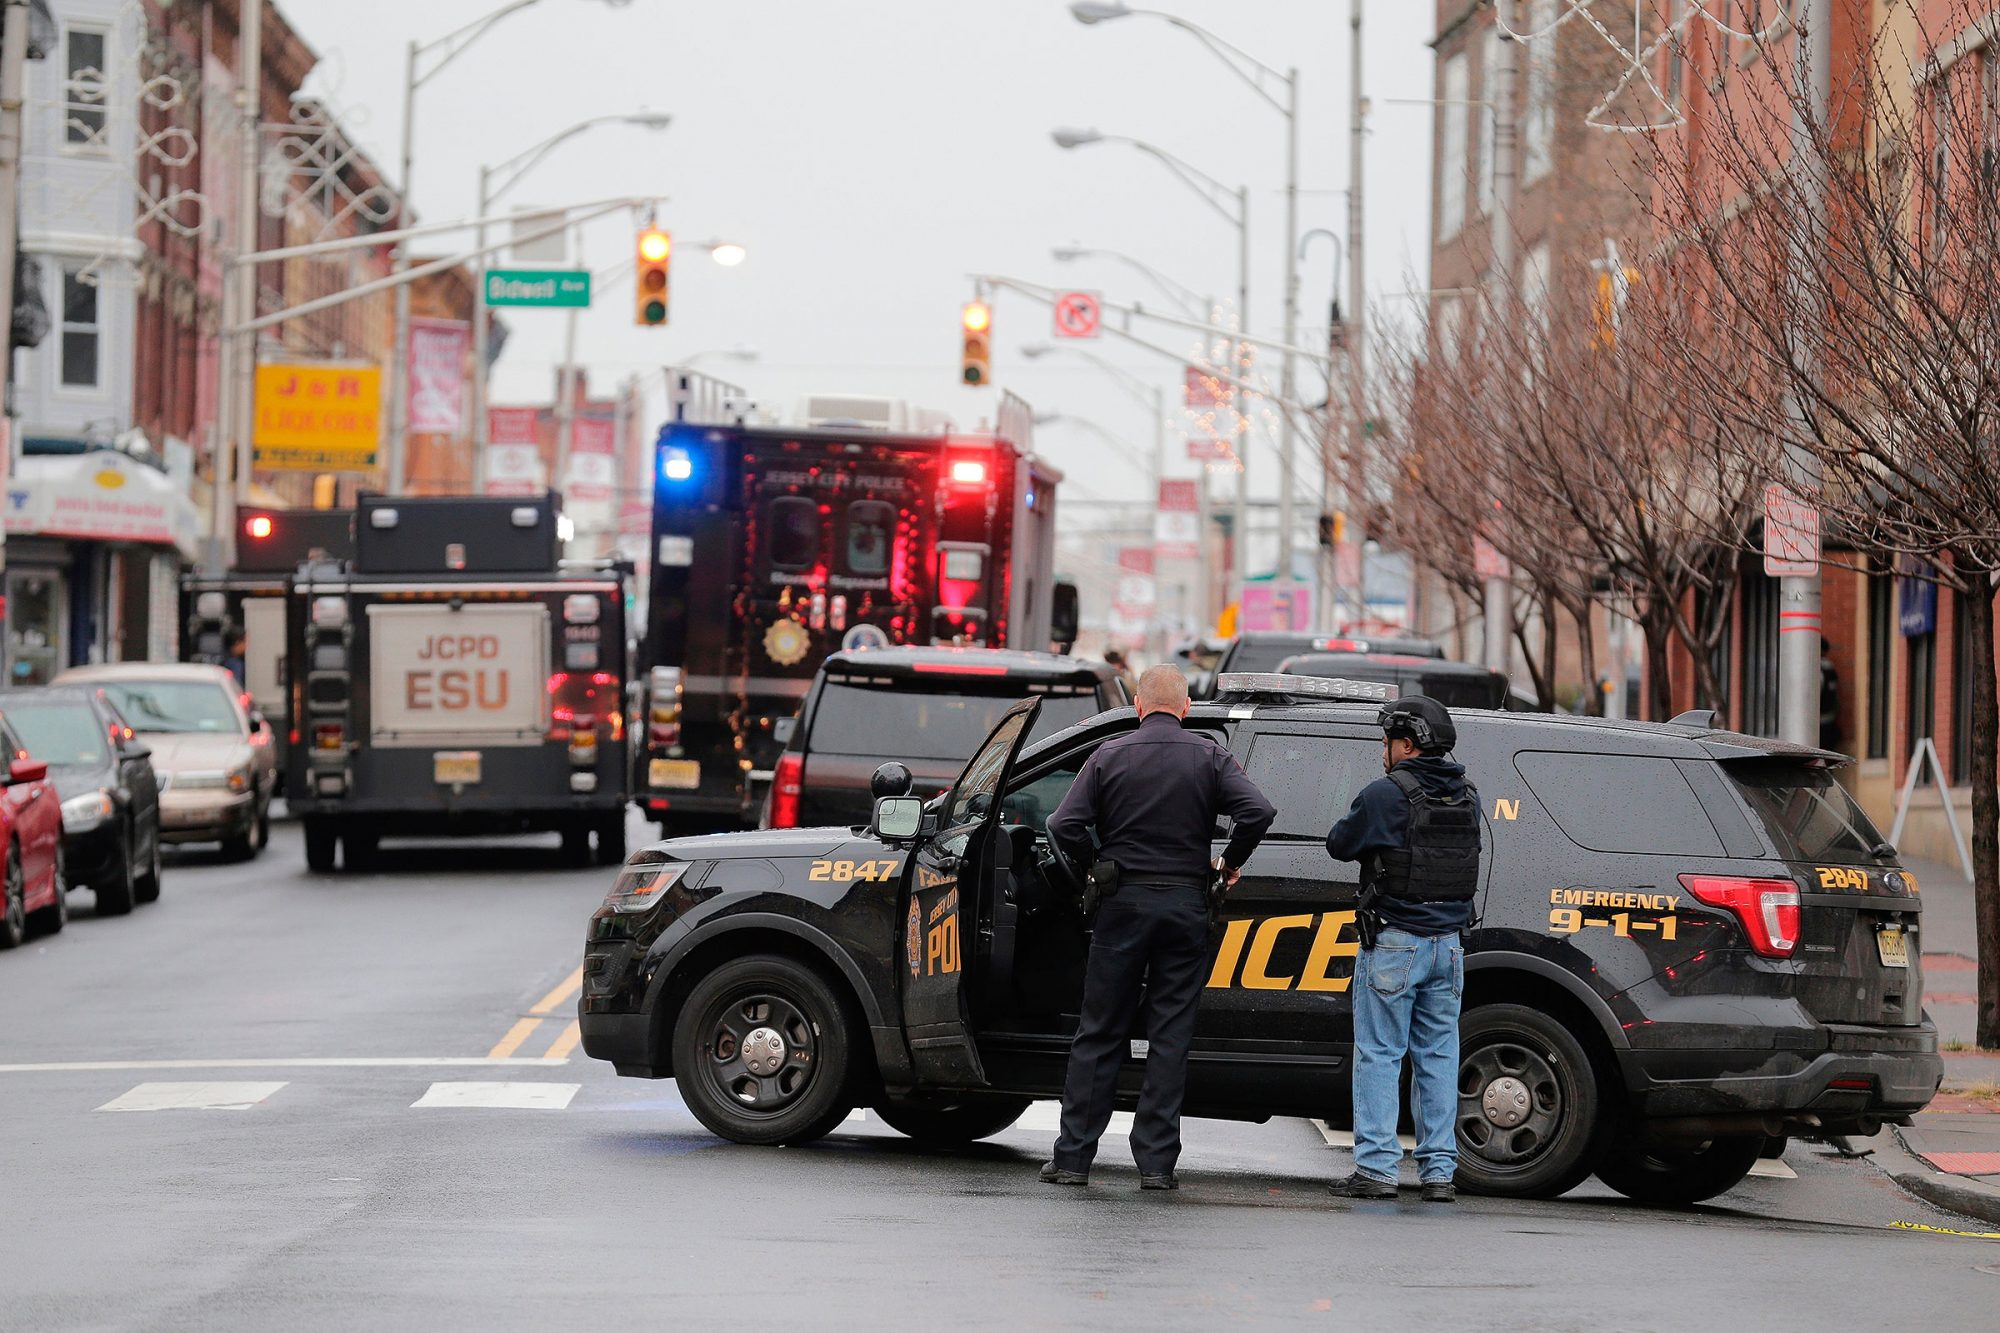 Jersey City active shooter